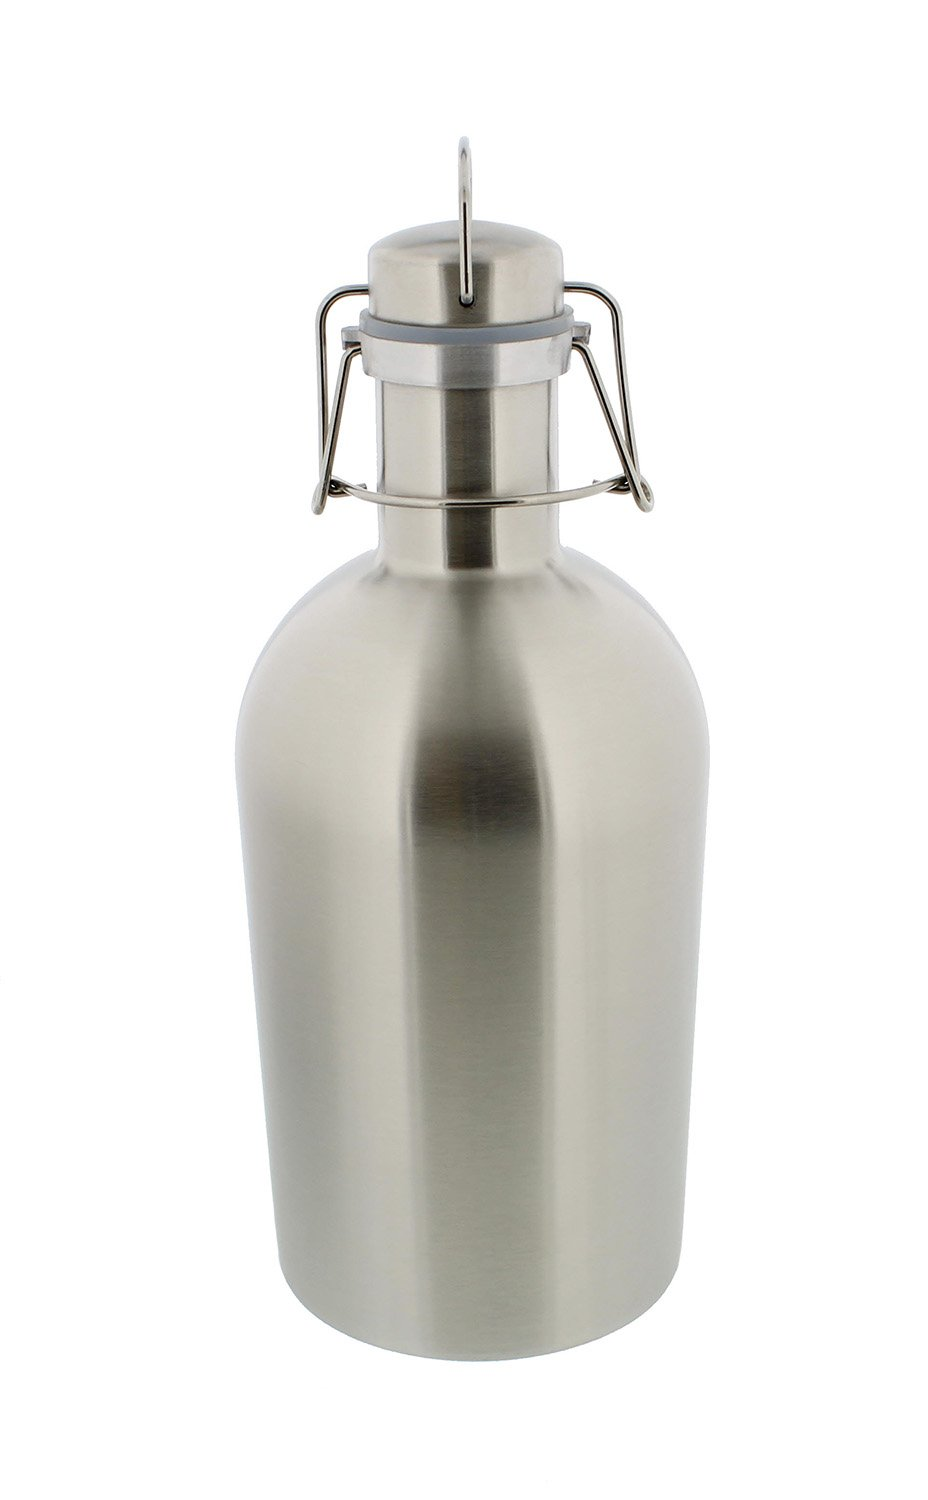 Beer Growler - 1 liter, 33 ounces - Stainless Steel with Swing-Top, Keeps Homebrew Fresh and Cold with Airtight Seal G Francis Brew COMINHKPR126281